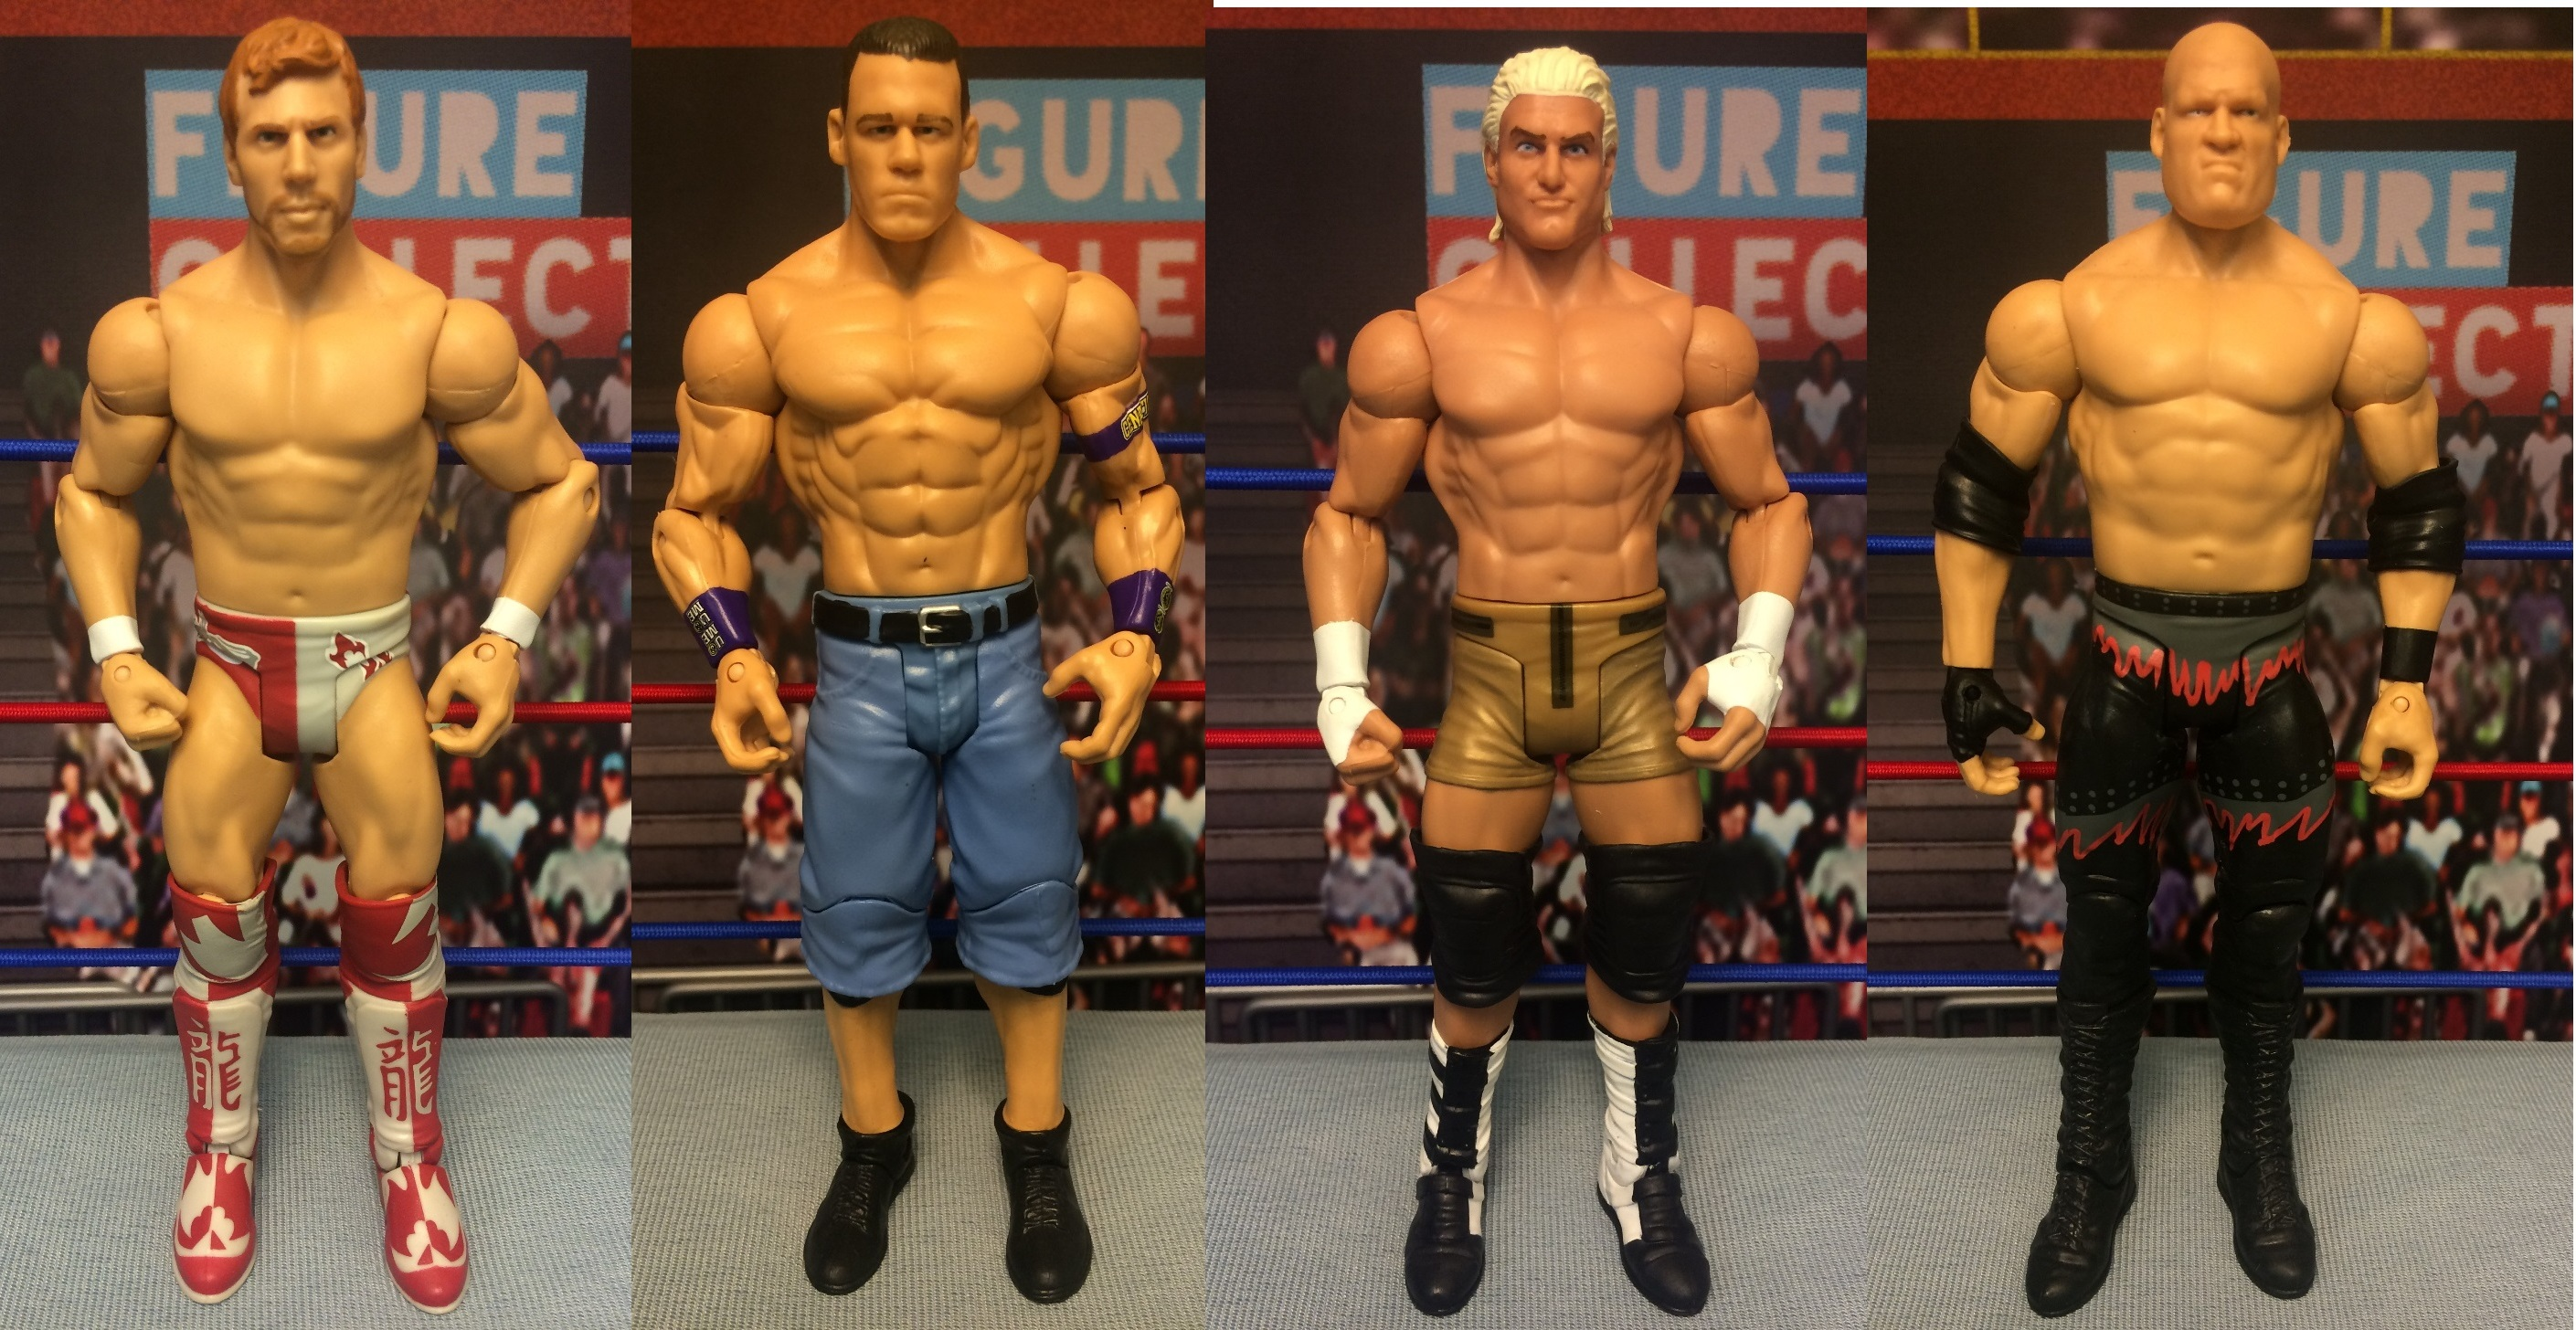 Champion Collection (Target Exclusive): Daniel Bryan, John Cena, Kane, Dolph Ziggler